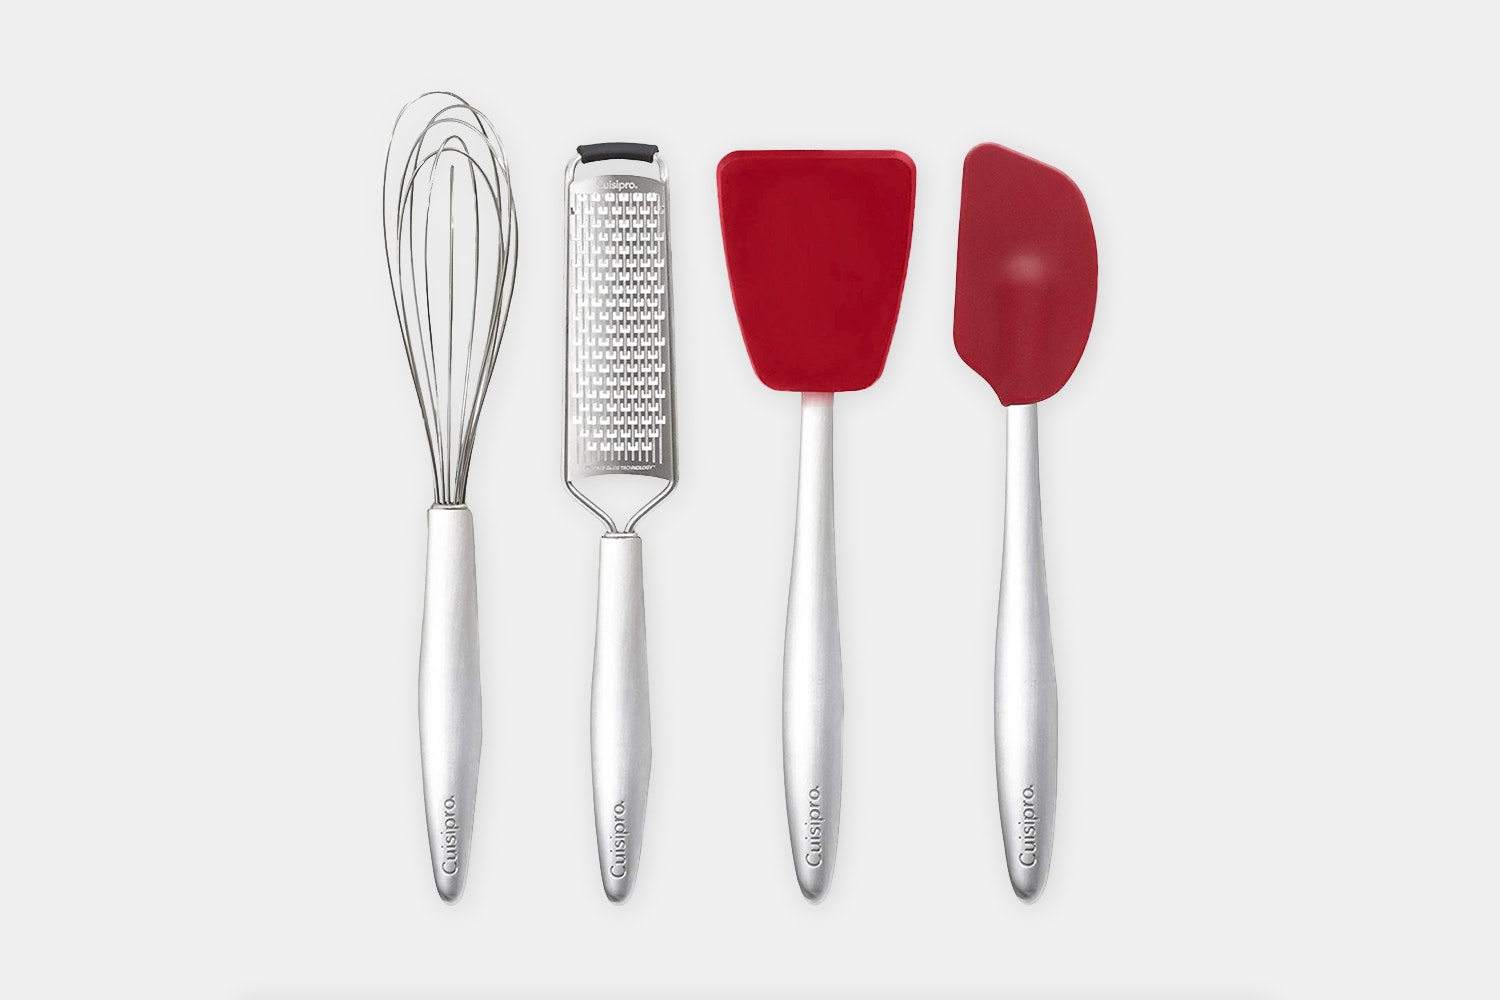 Cuisipro Piccola Mini Baking or Cooking Tool Set